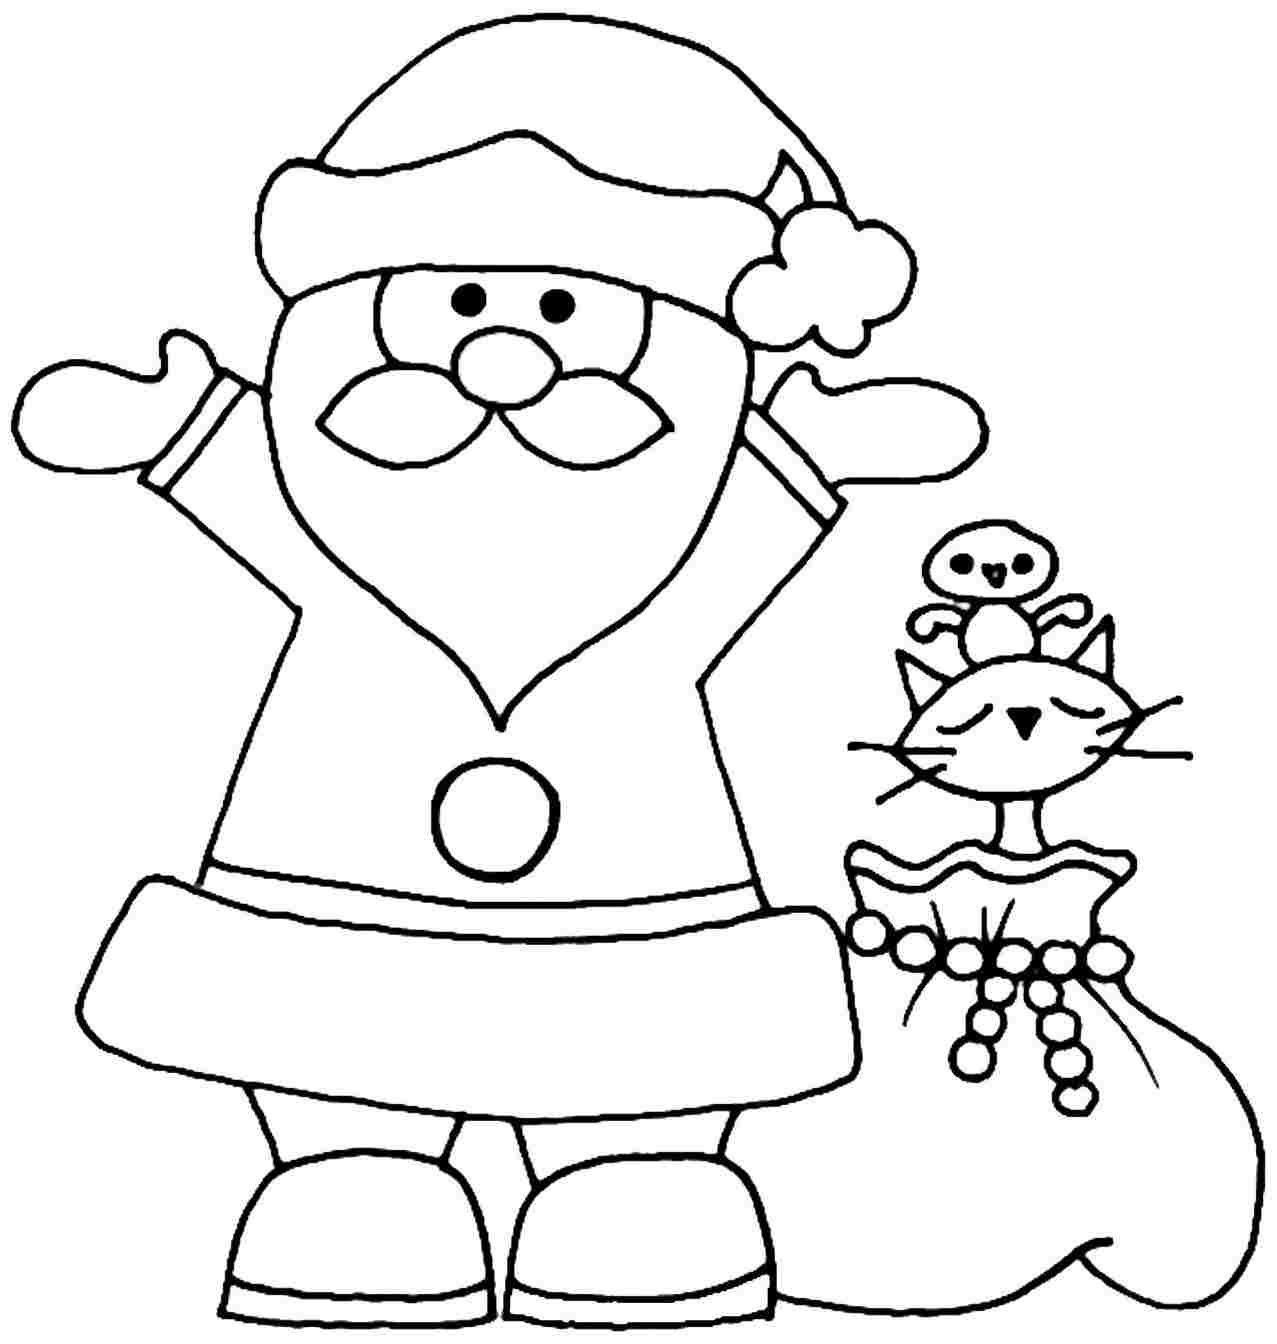 1277x1344 santa claus coloring pages claus